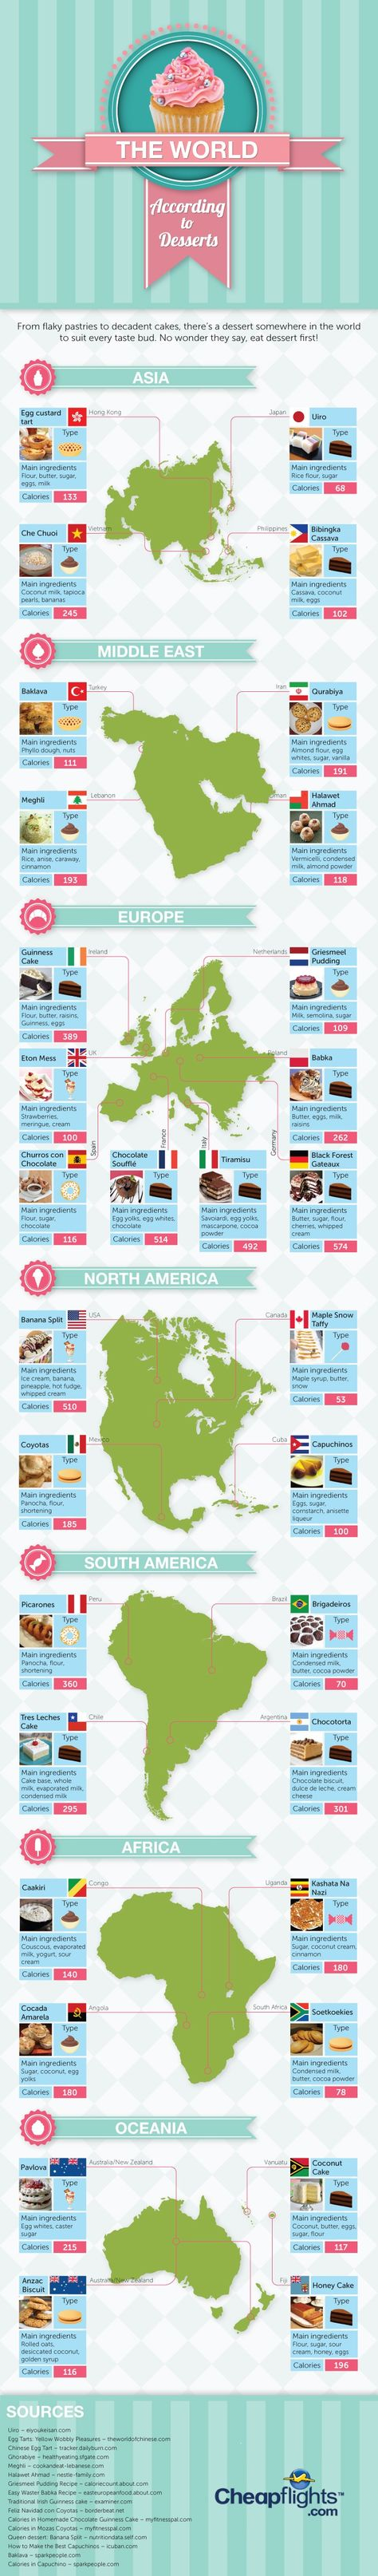 The World According To Desserts #Infographic #Dessert #Food